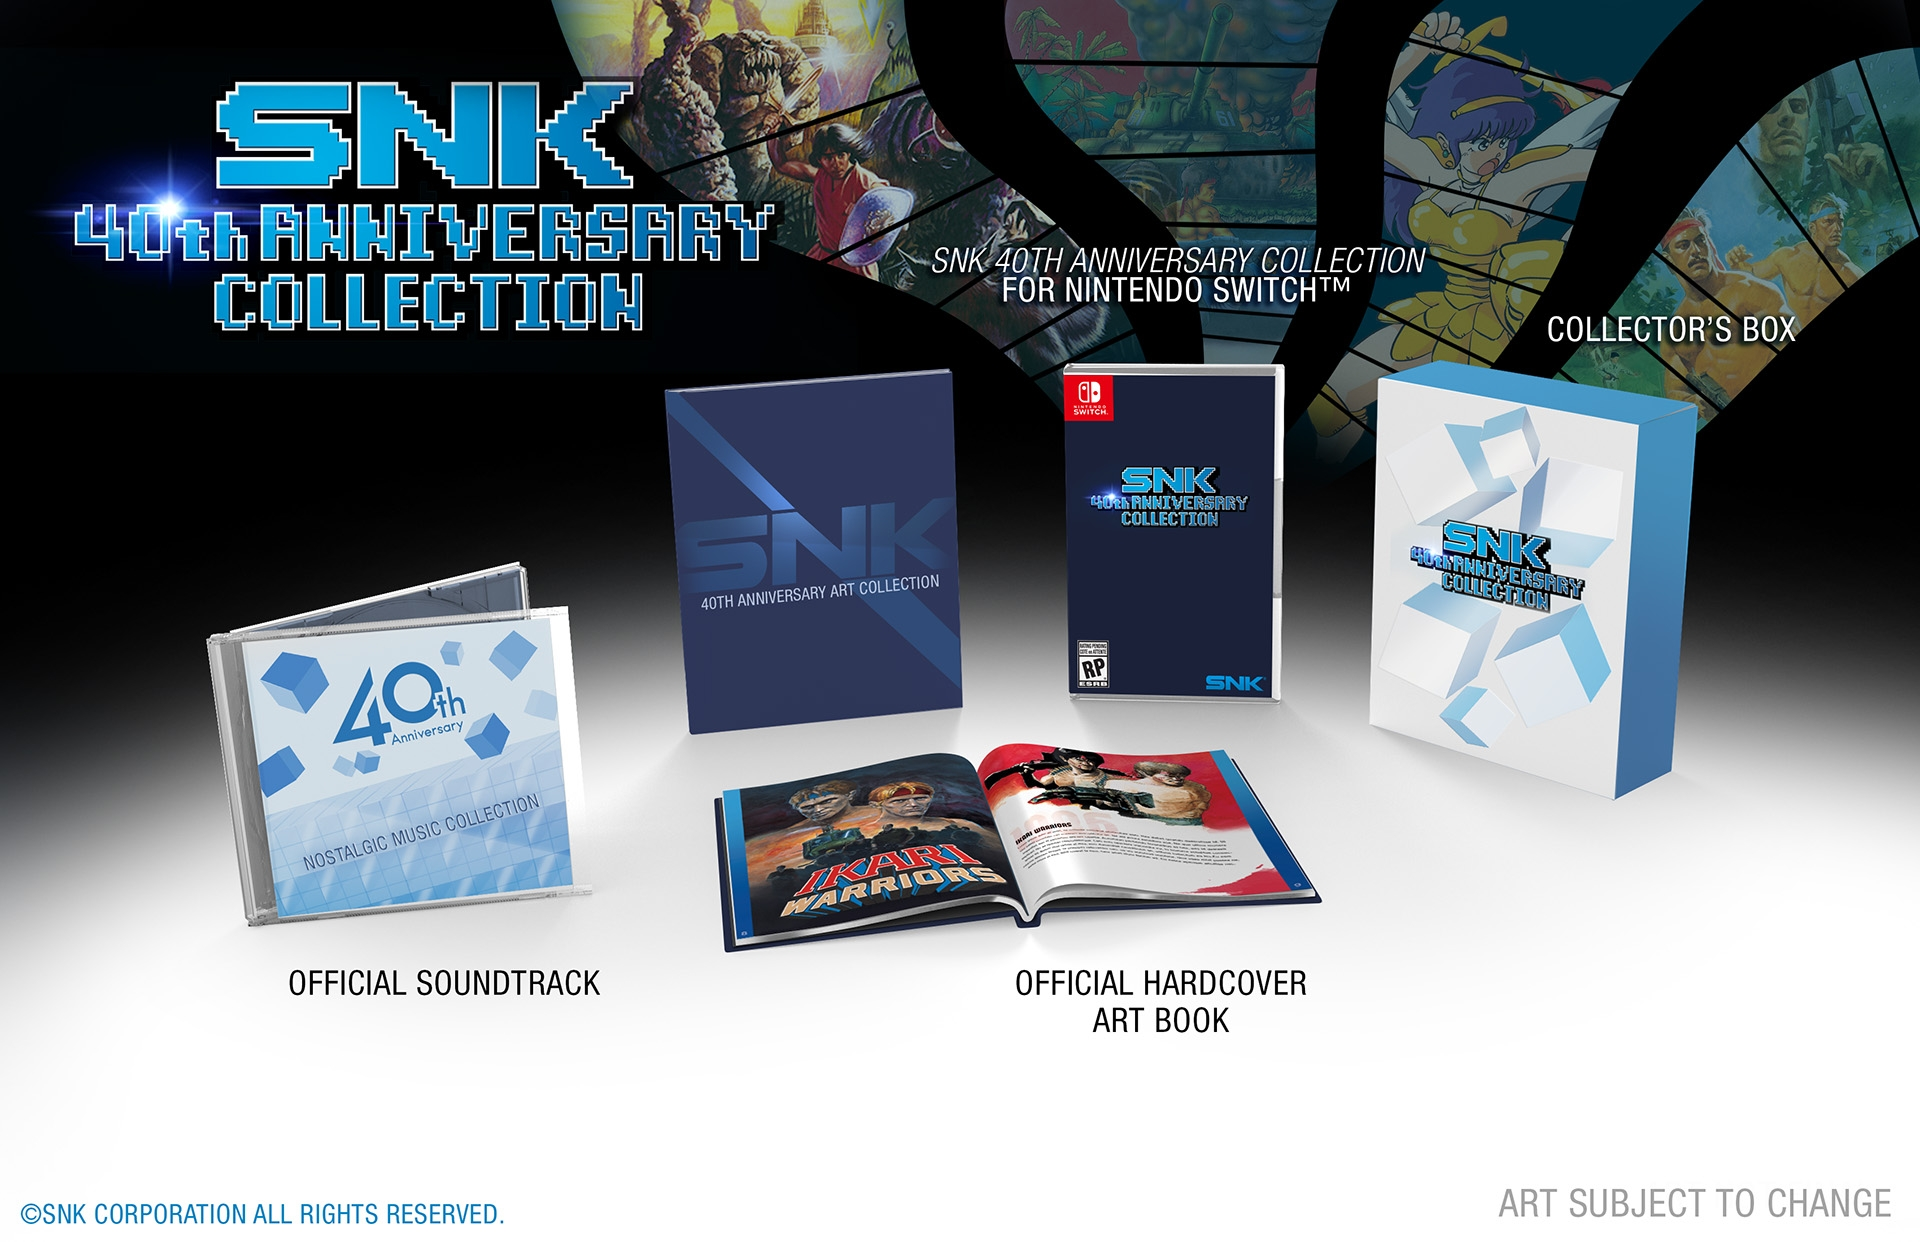 e21268aaf49 The NIS America store is now taking pre-orders for the SNK 40th Anniversary  Collection Limited Edition